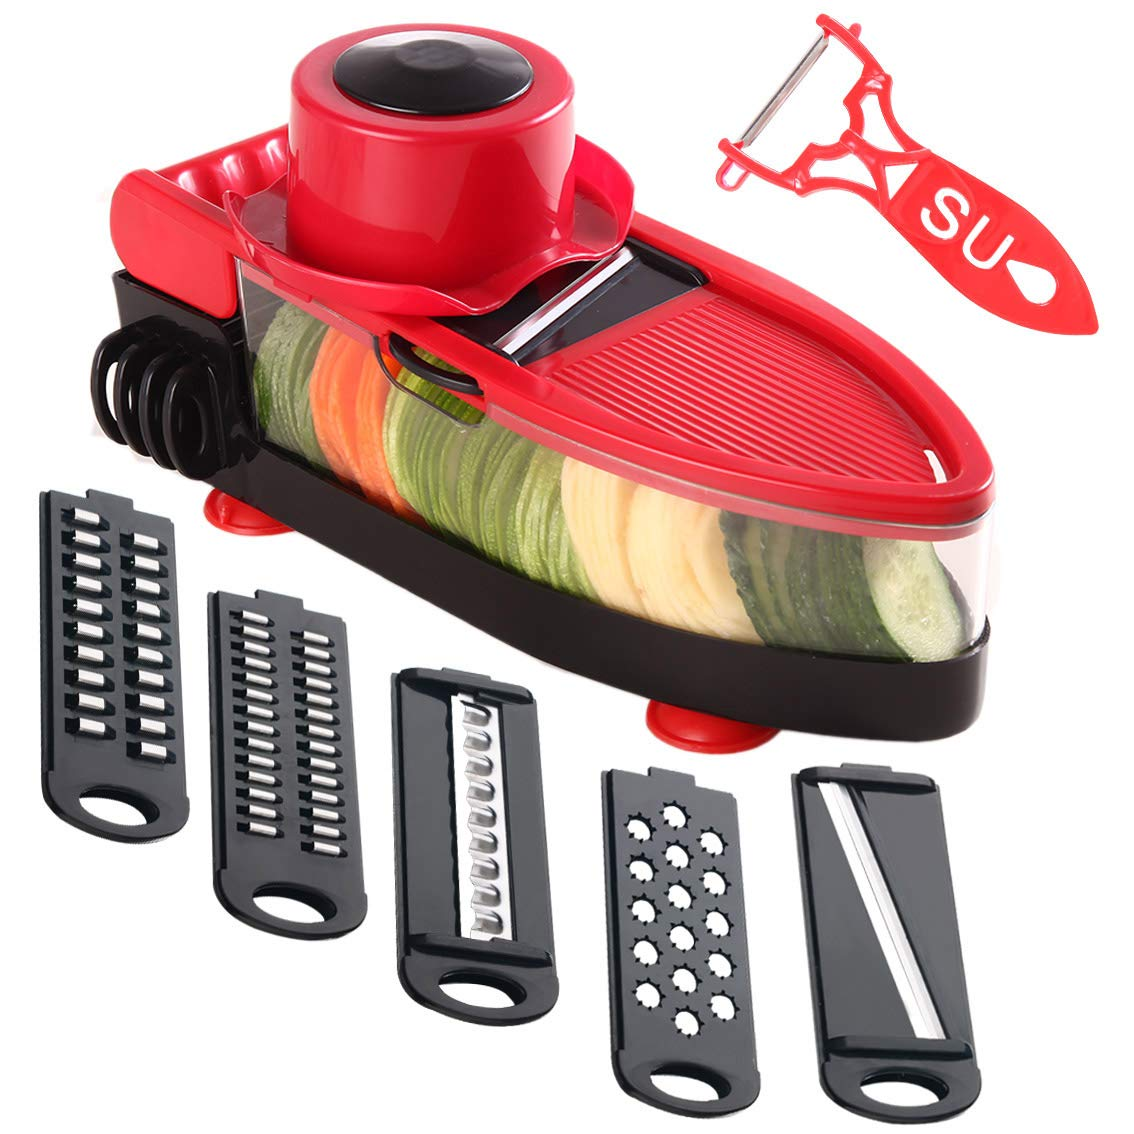 Tenta Kitchen 4 Piece Cheese Grater Set with Container - Zester Parmesan Cheese Shredder Vegetable Slicer Cheese Graters - Fine and Coarse Metal Hand Cheese Grater Adjustable Hard Cheese Slicer (4 in 1,Green) TENTA7 COMINHKPR96441